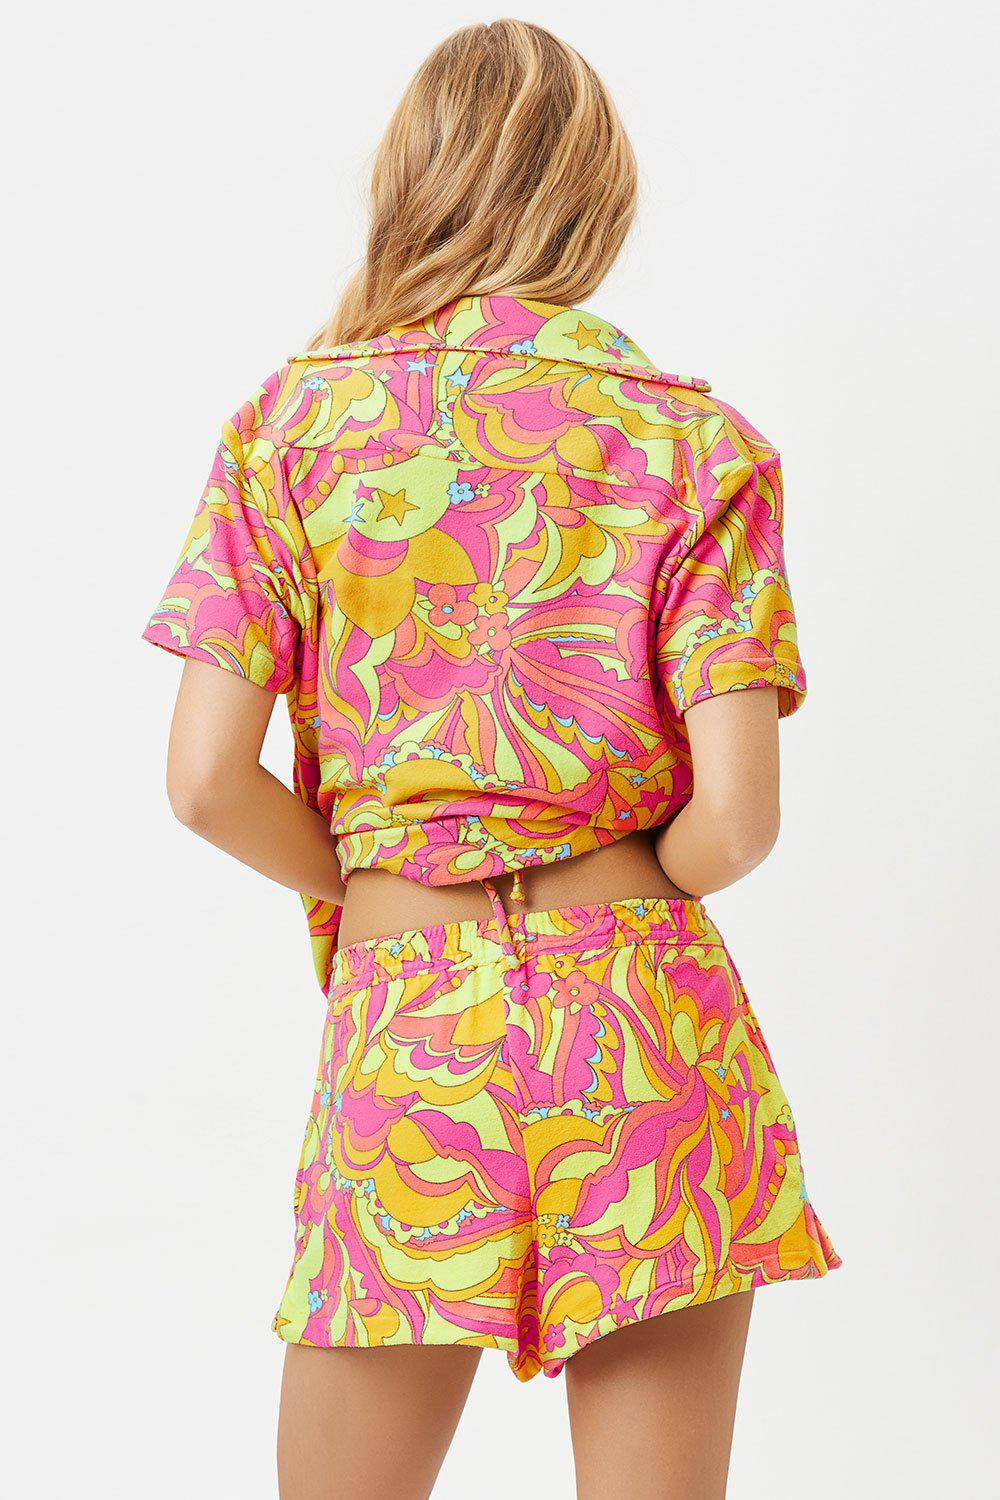 Coco Terry Shorts - Peace Terry